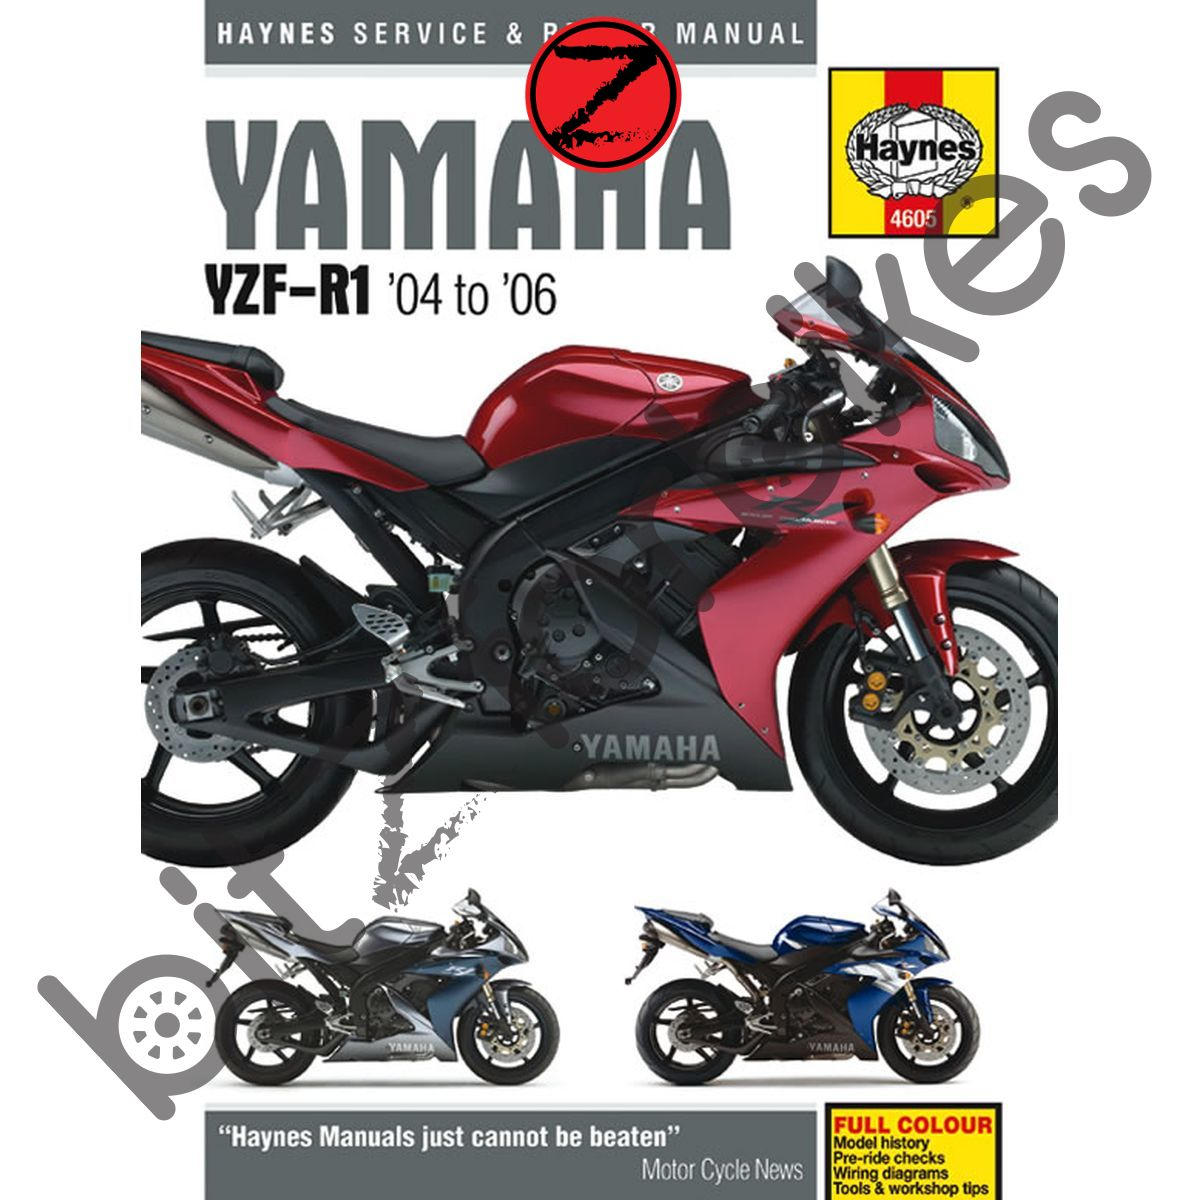 Sentinel Haynes Motorcycle Manual Yamaha YZF R1 04-06 DUE AUG 2007